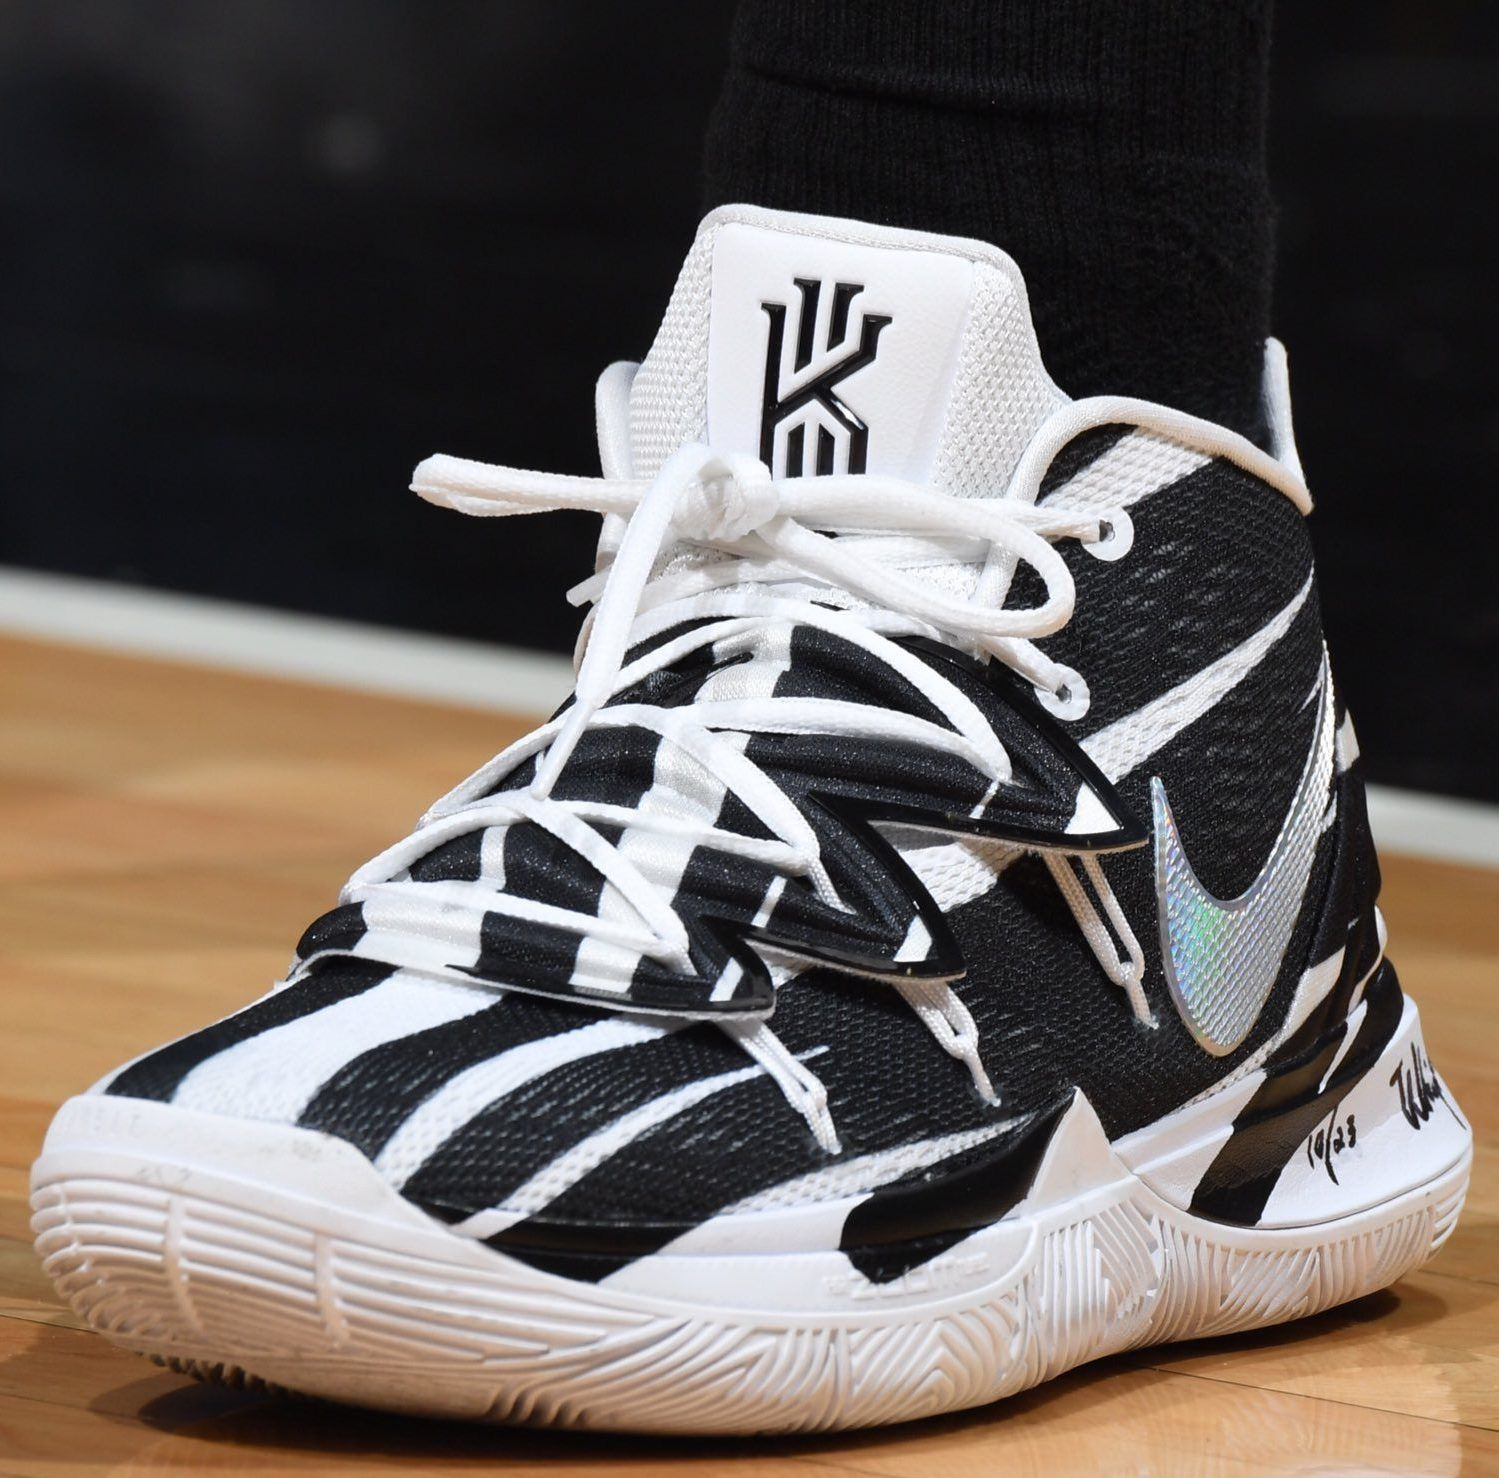 Irving shoes, Kyrie irving shoes